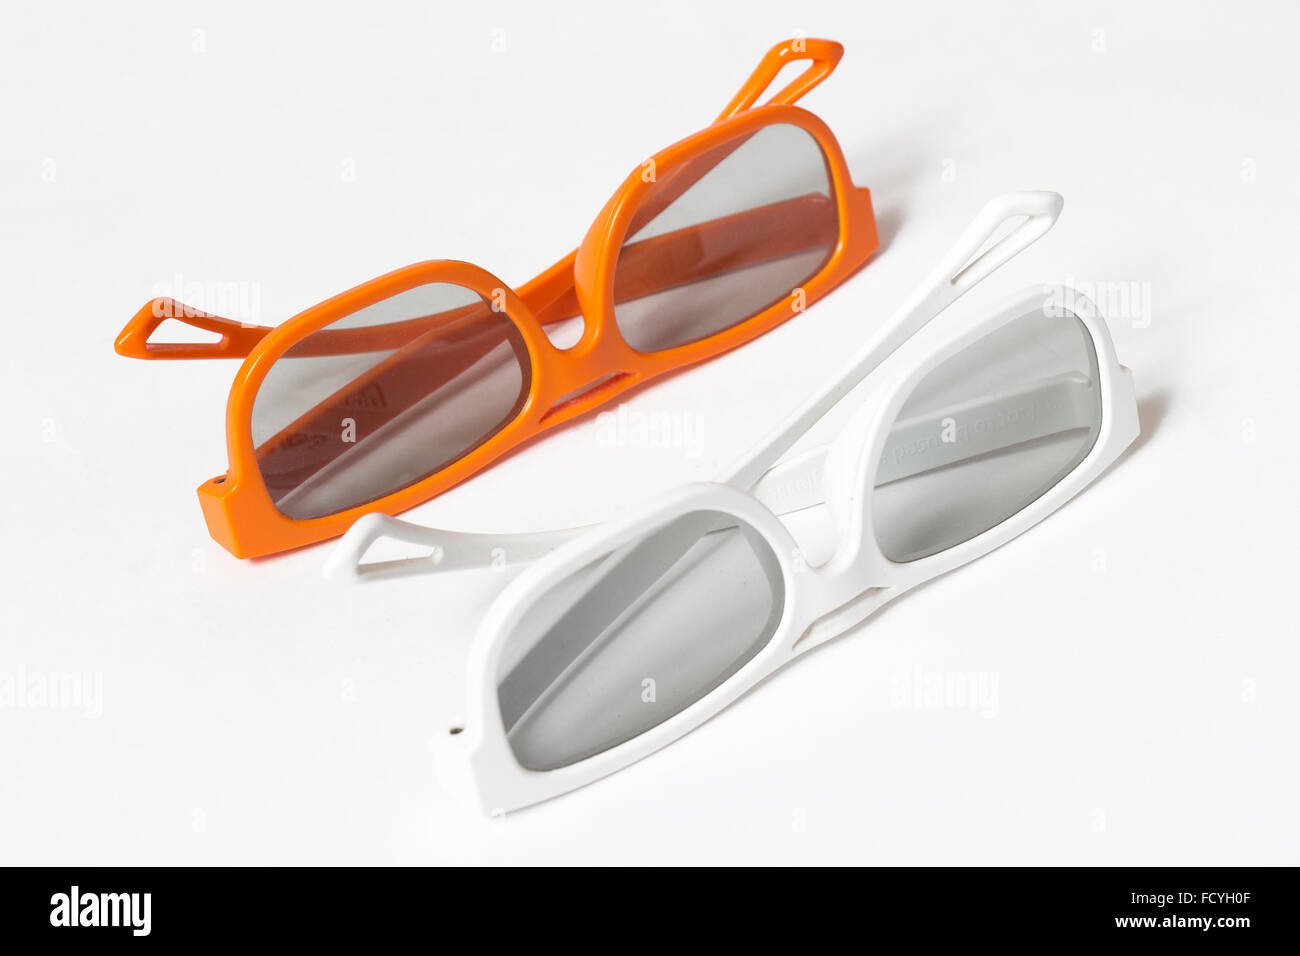 A pair of 3D glasses - Stock Image